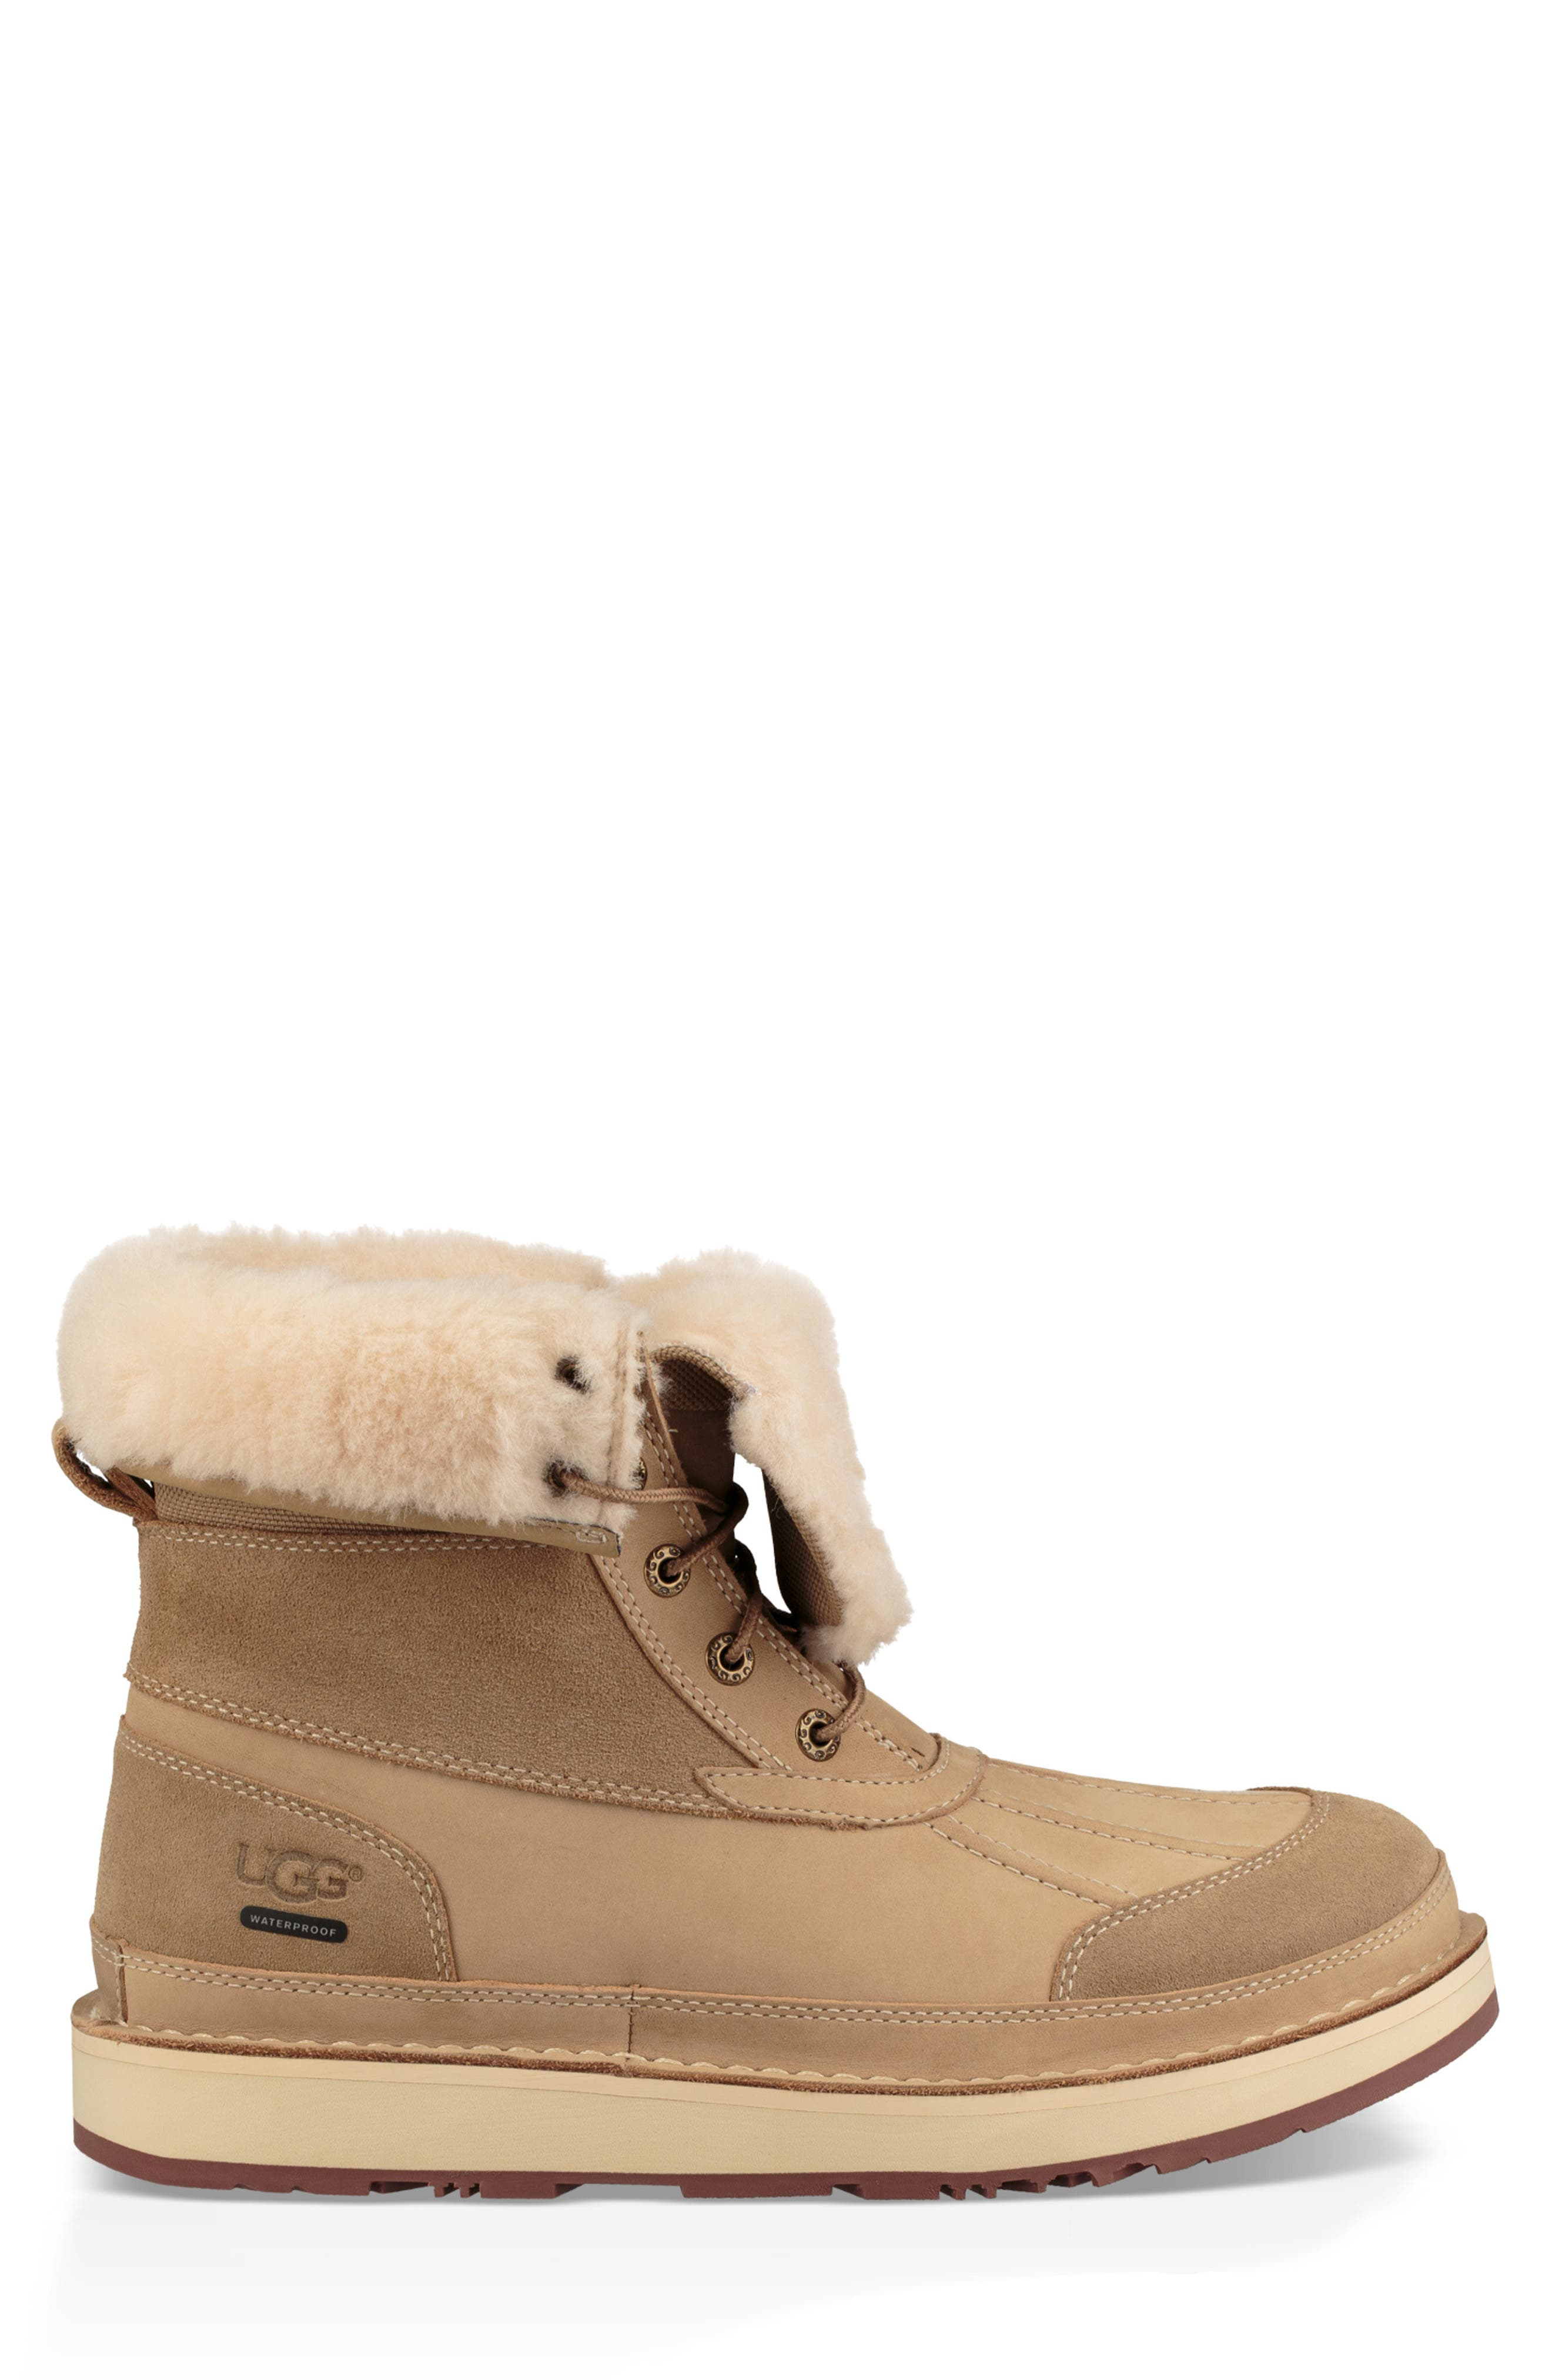 Avalanche Butte Waterproof Boot,                             Alternate thumbnail 11, color,                             DESERT TAN